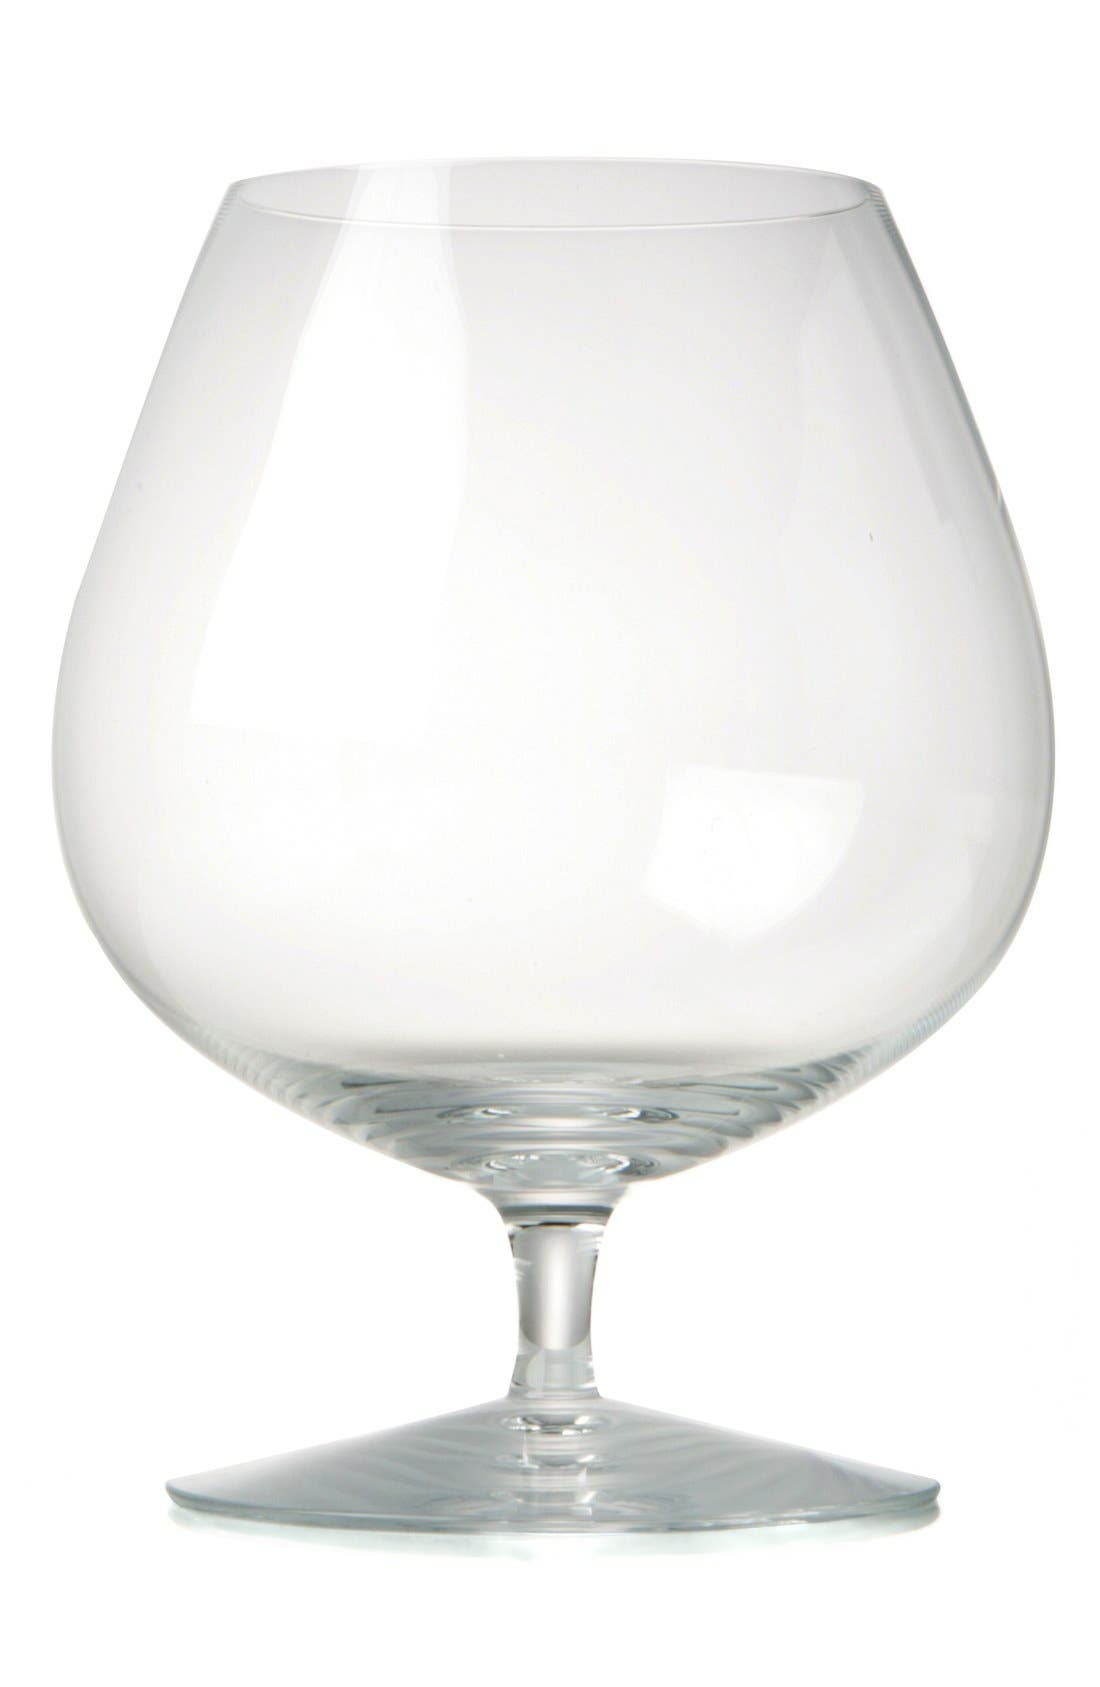 'Expert' Cognac Glasses,                         Main,                         color, 100